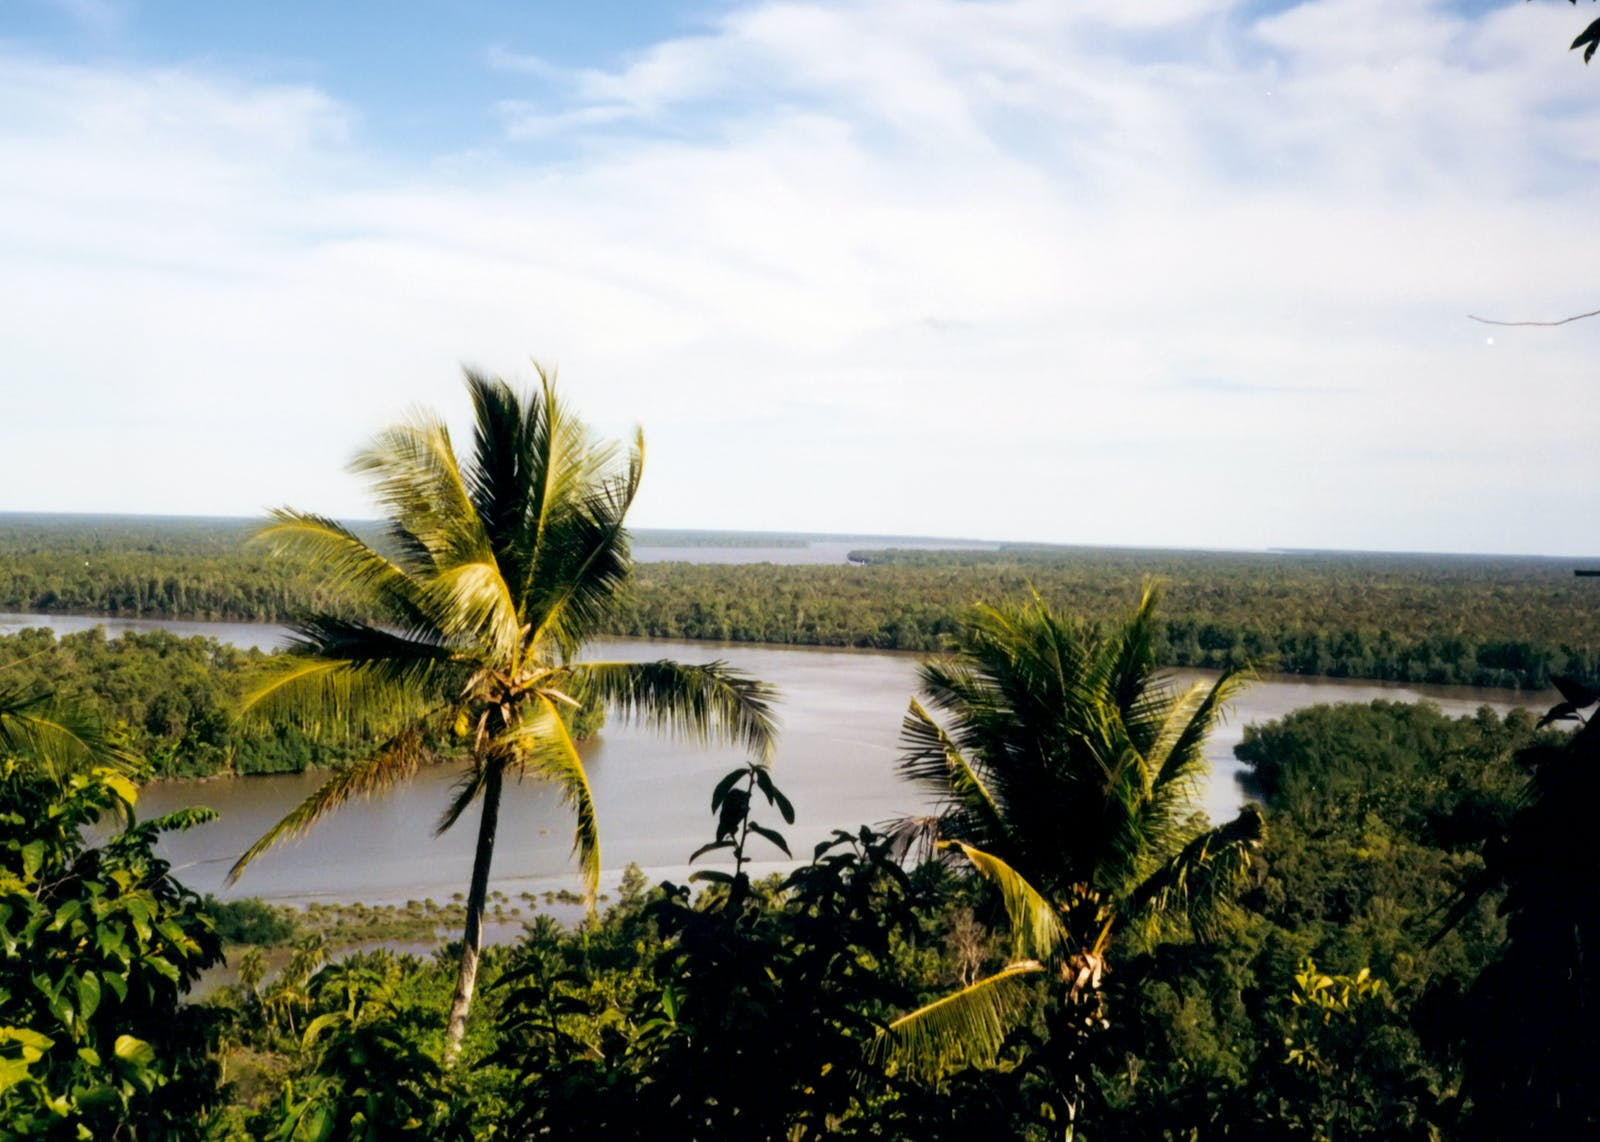 Southern New Guinea Freshwater Swamp Forests